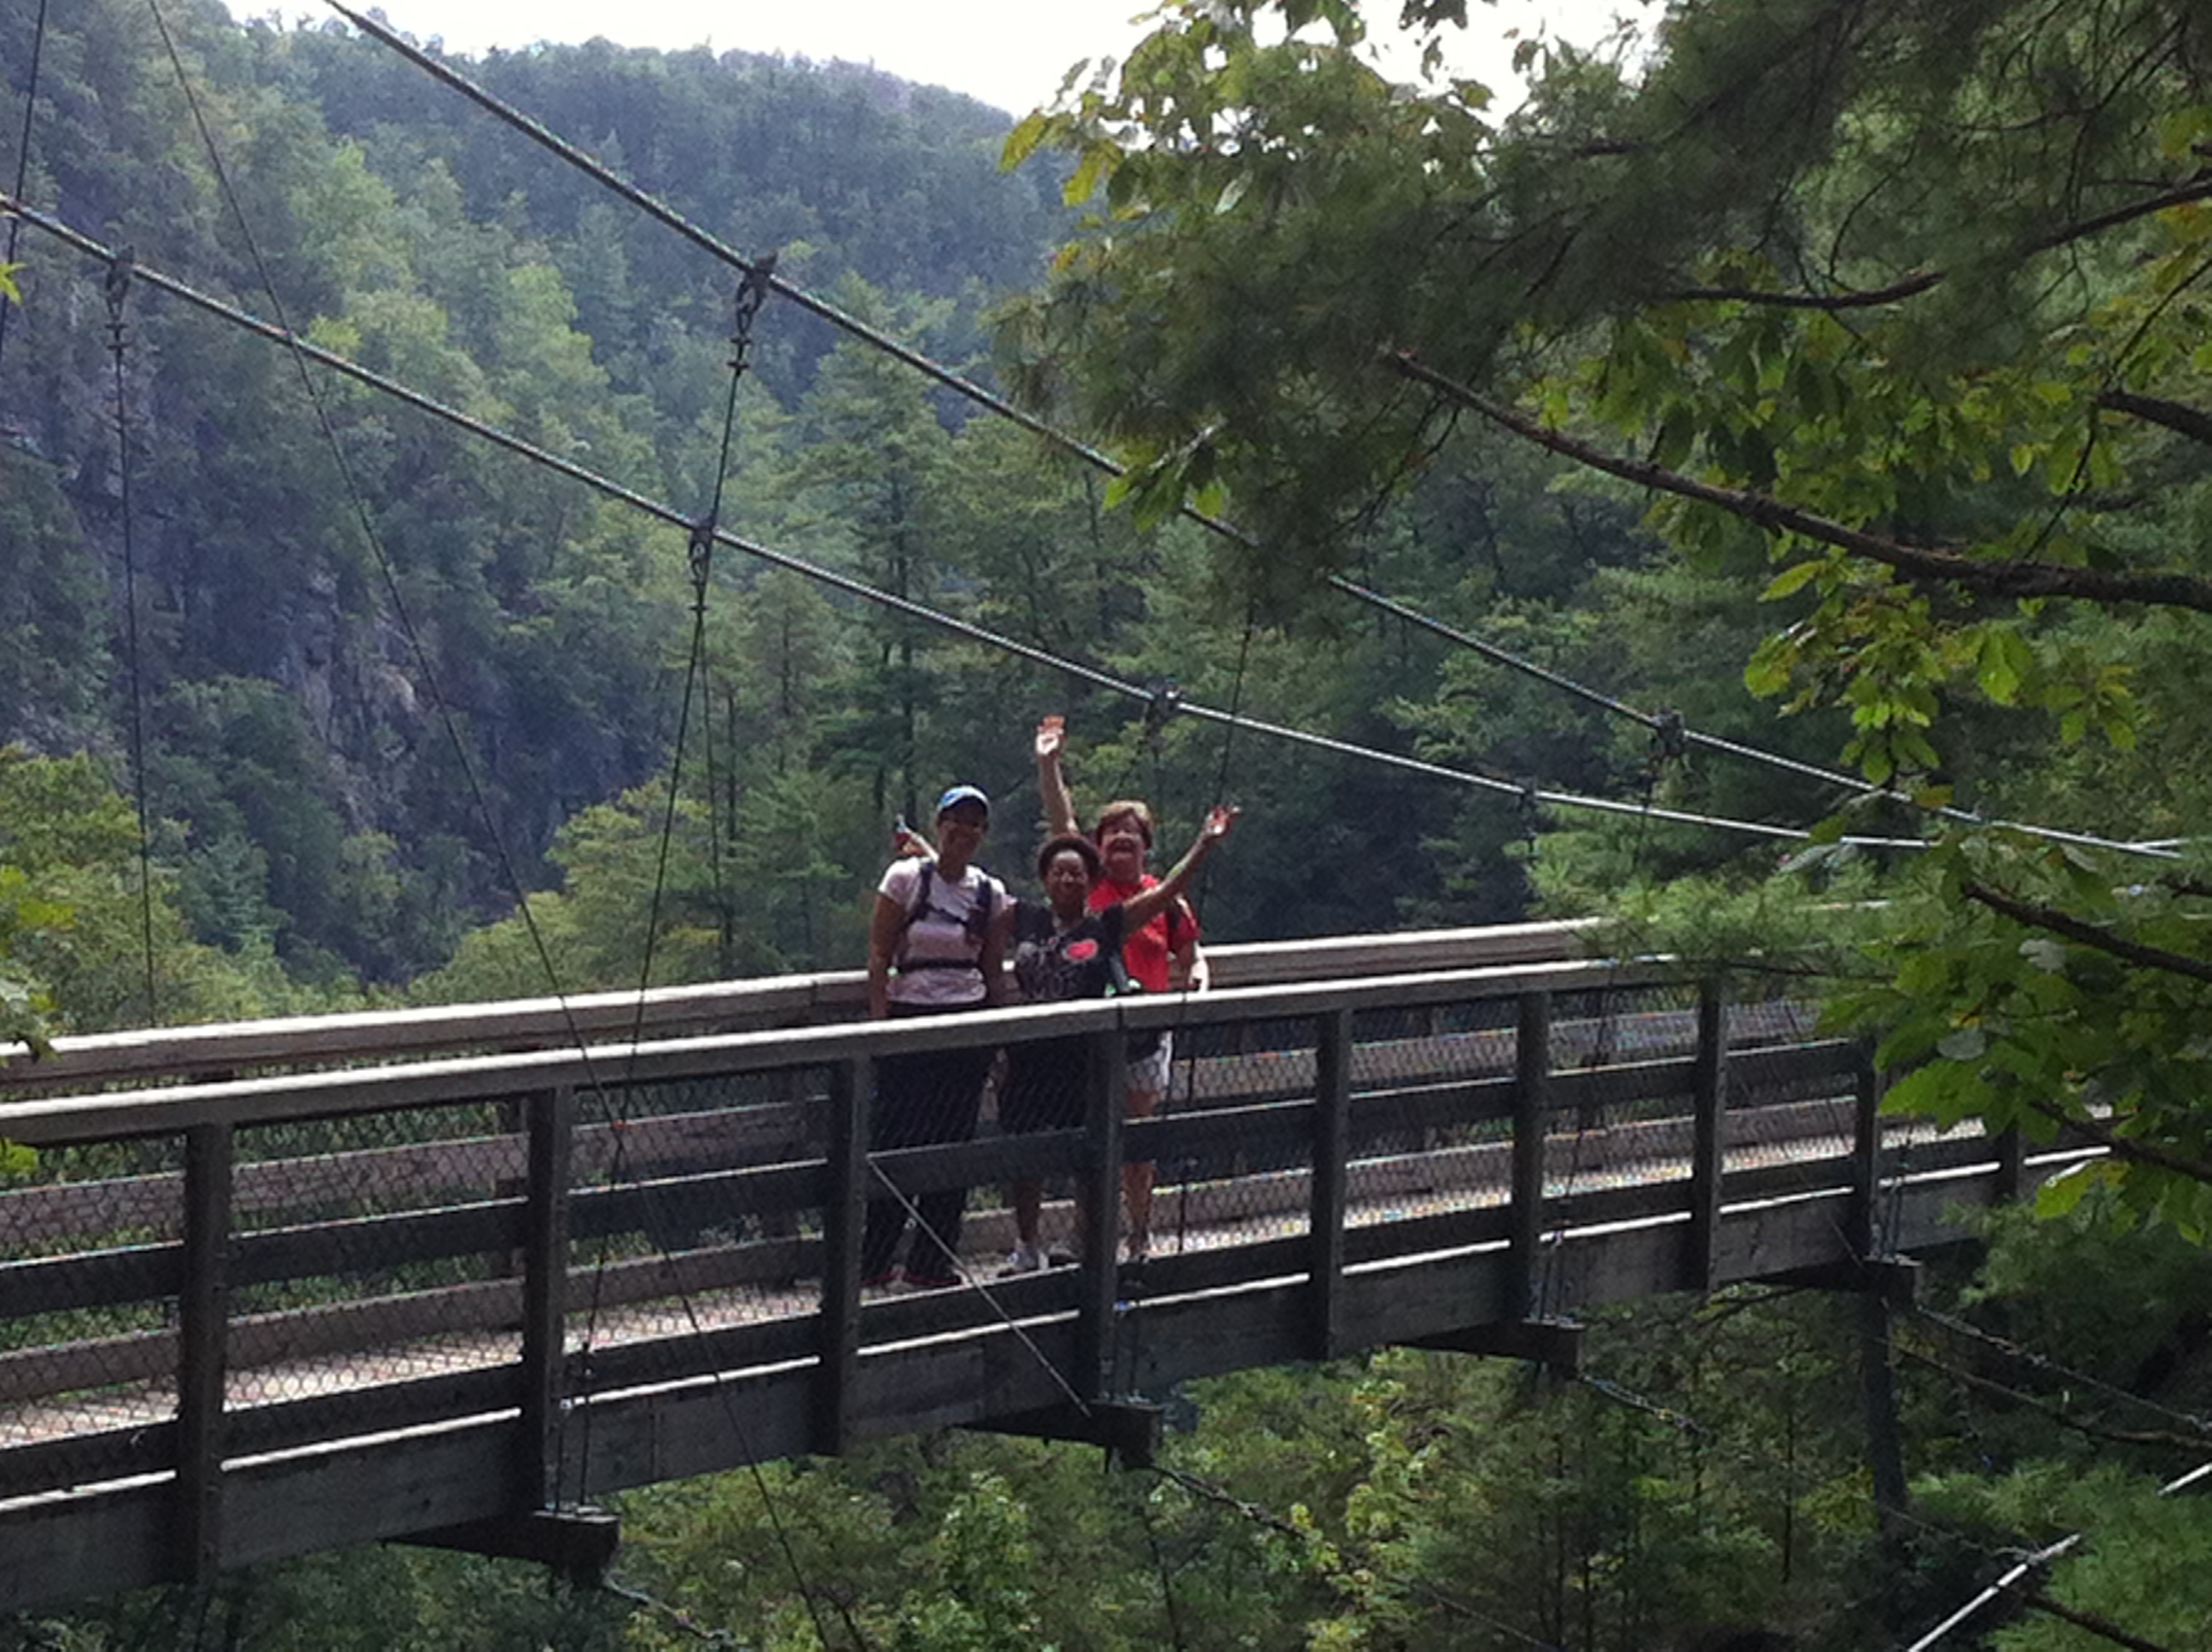 Tallulah Gorge Swing Bridge